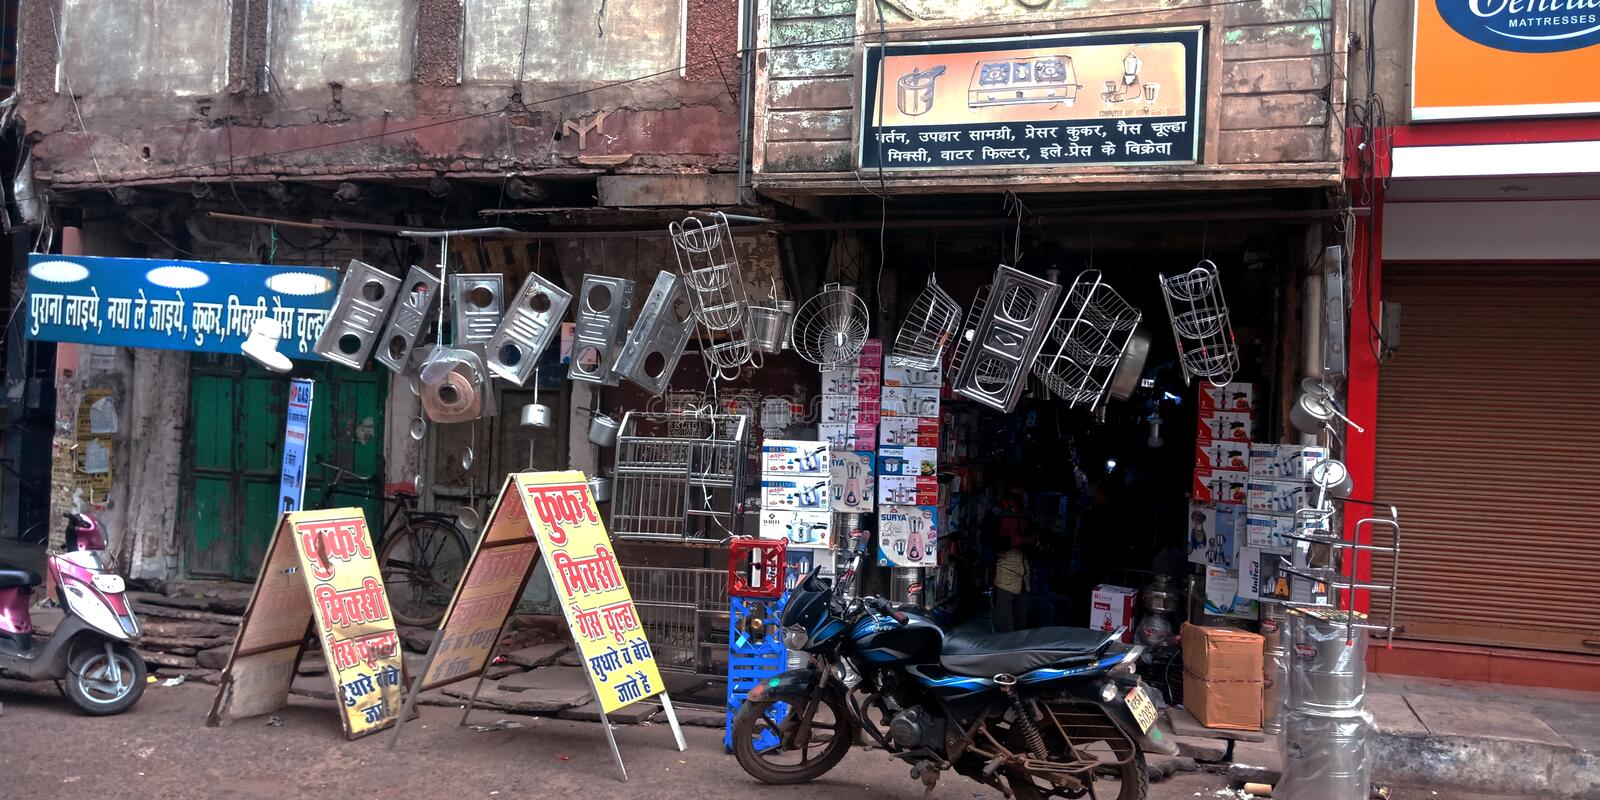 Kitchen usable item shop at main market street. Villege, people, crowd, farmers, indian, counting, vegetable, units, rural, area, coriander, leaves, wholesale royalty free stock image